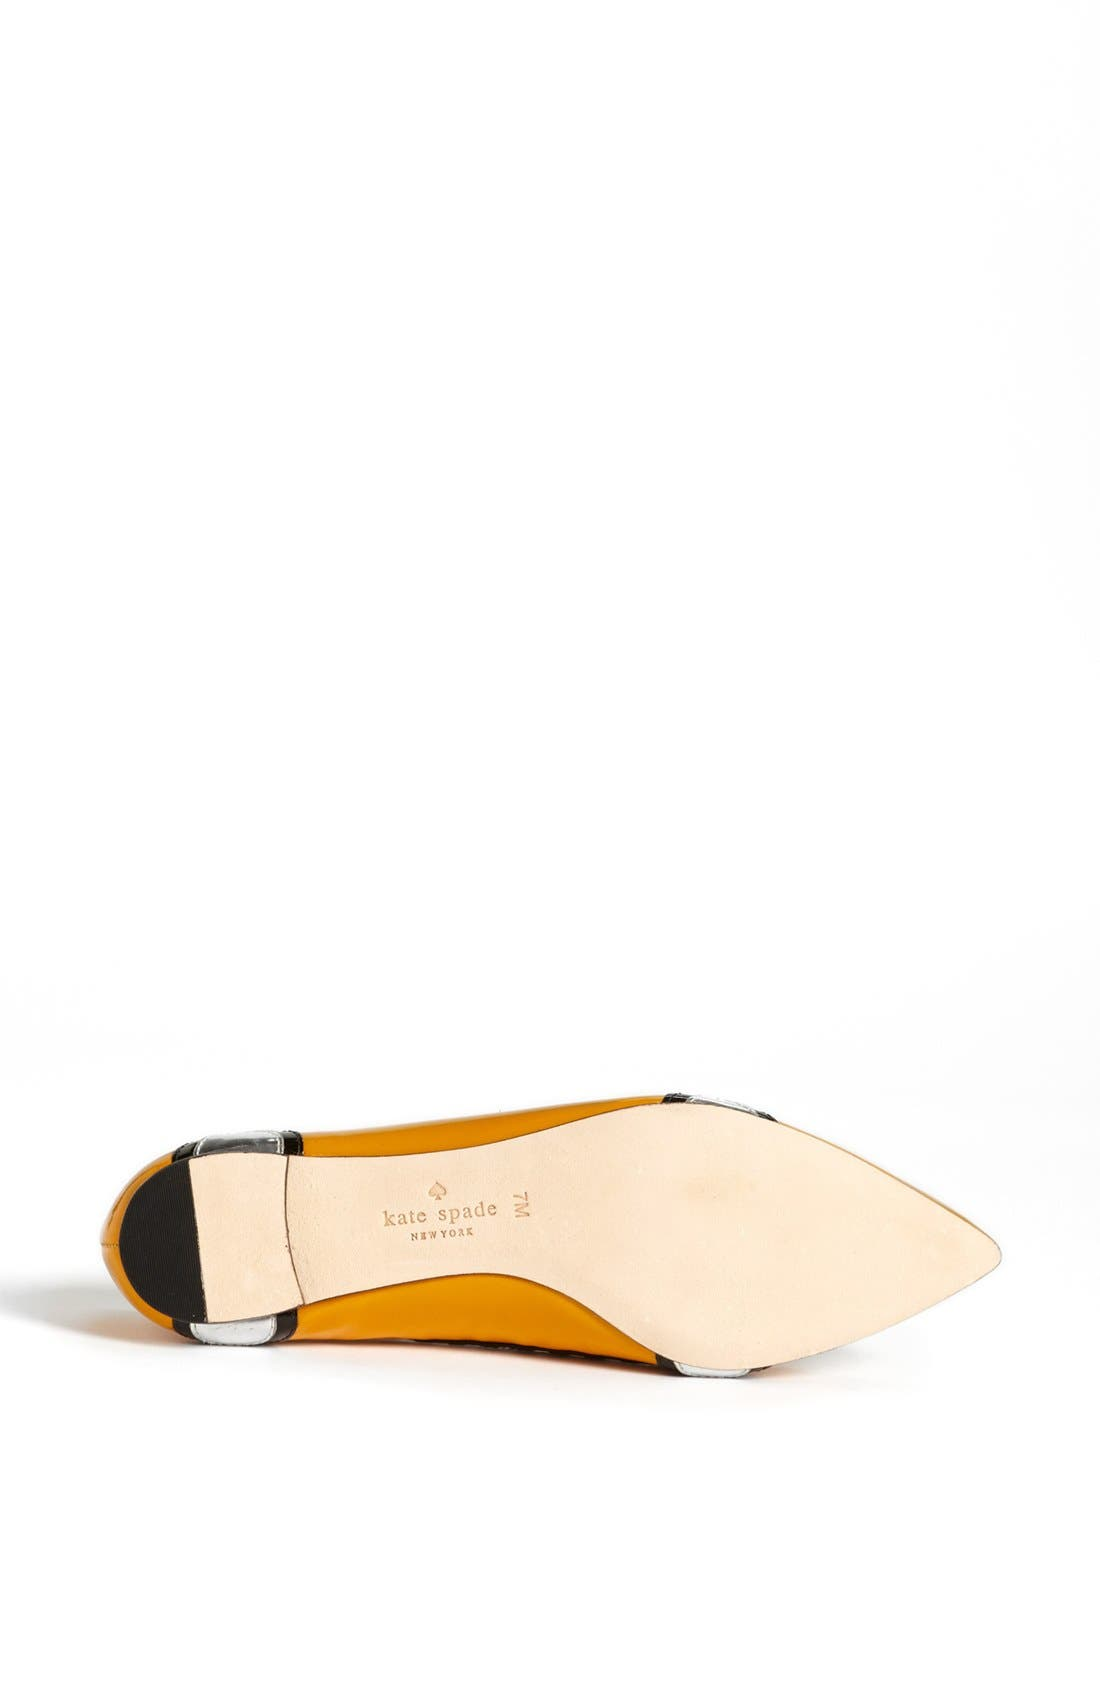 'go' flat,                             Alternate thumbnail 4, color,                             TAXI YELLOW PATENT